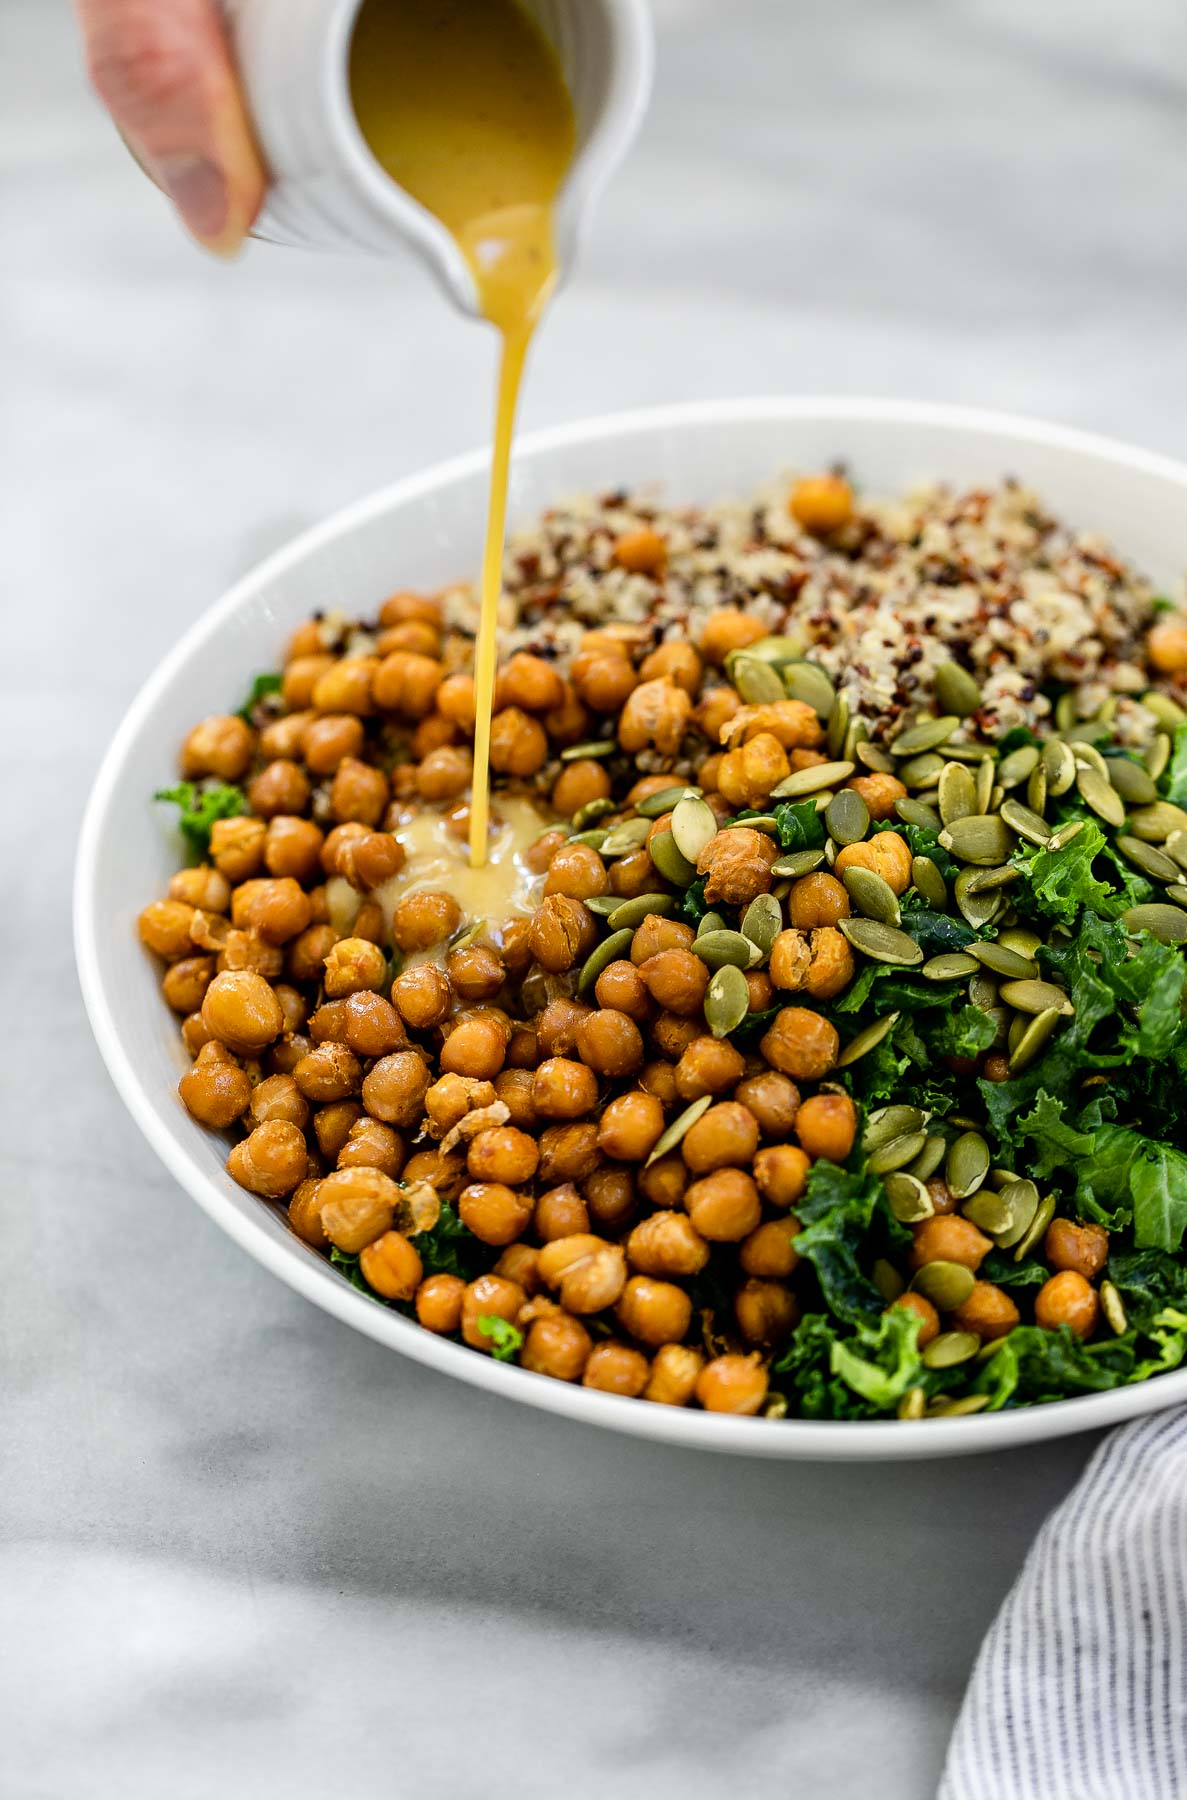 Ingredients for the kale quinoa salad in a bowl with the dressing pouring on top.